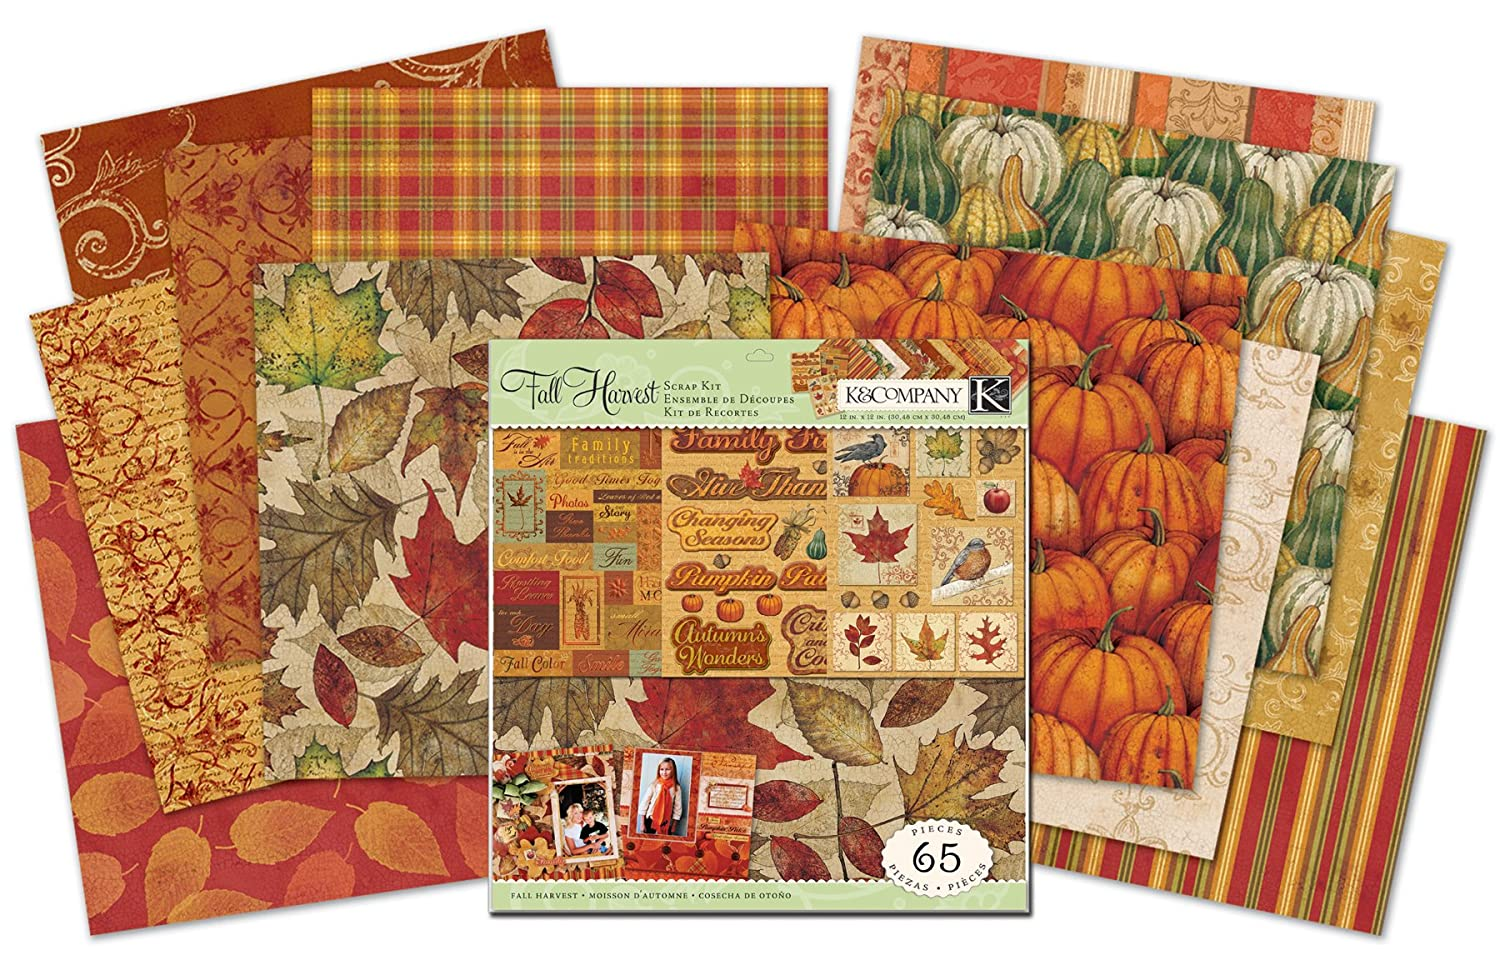 Scrapbook paper examples - Recreate The Fantastic Paper Crafts Shown Here Or Use These Examples To Inspire Your Own Ideas 12 By 12 Inch Kit Includes 12 Designer Papers